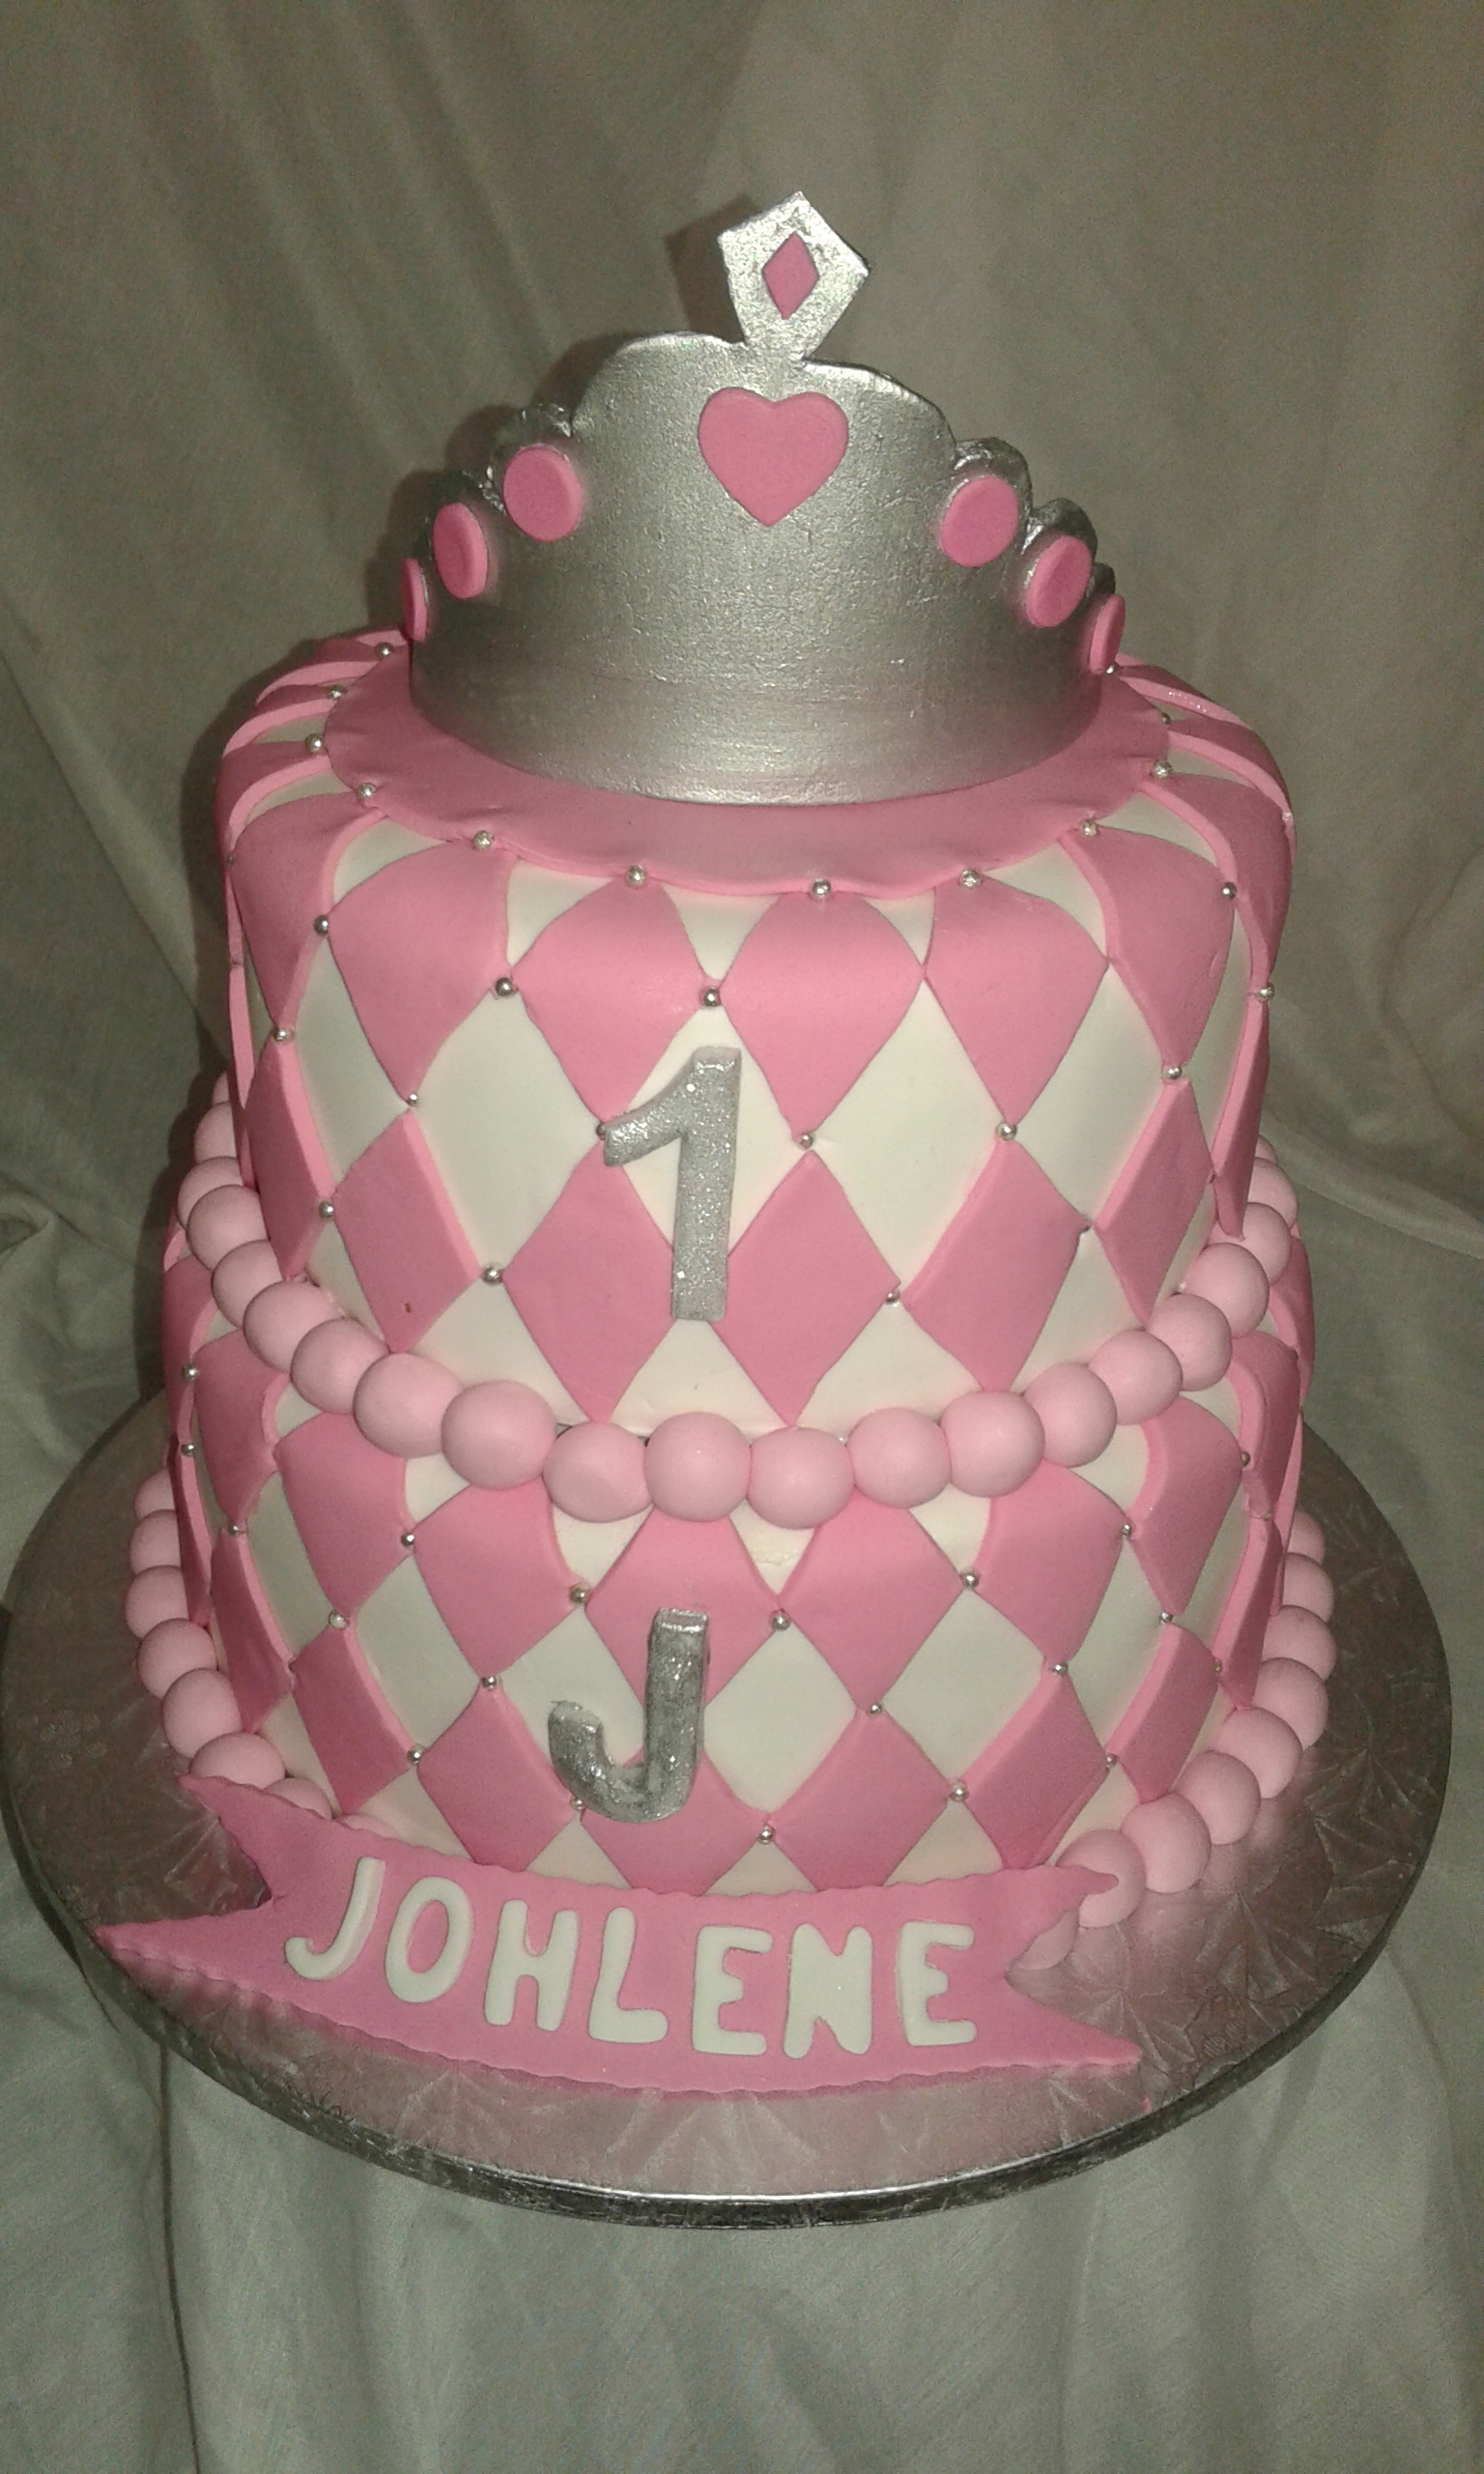 2 Tier From R995 Topper R1400 Baked By Nataleen